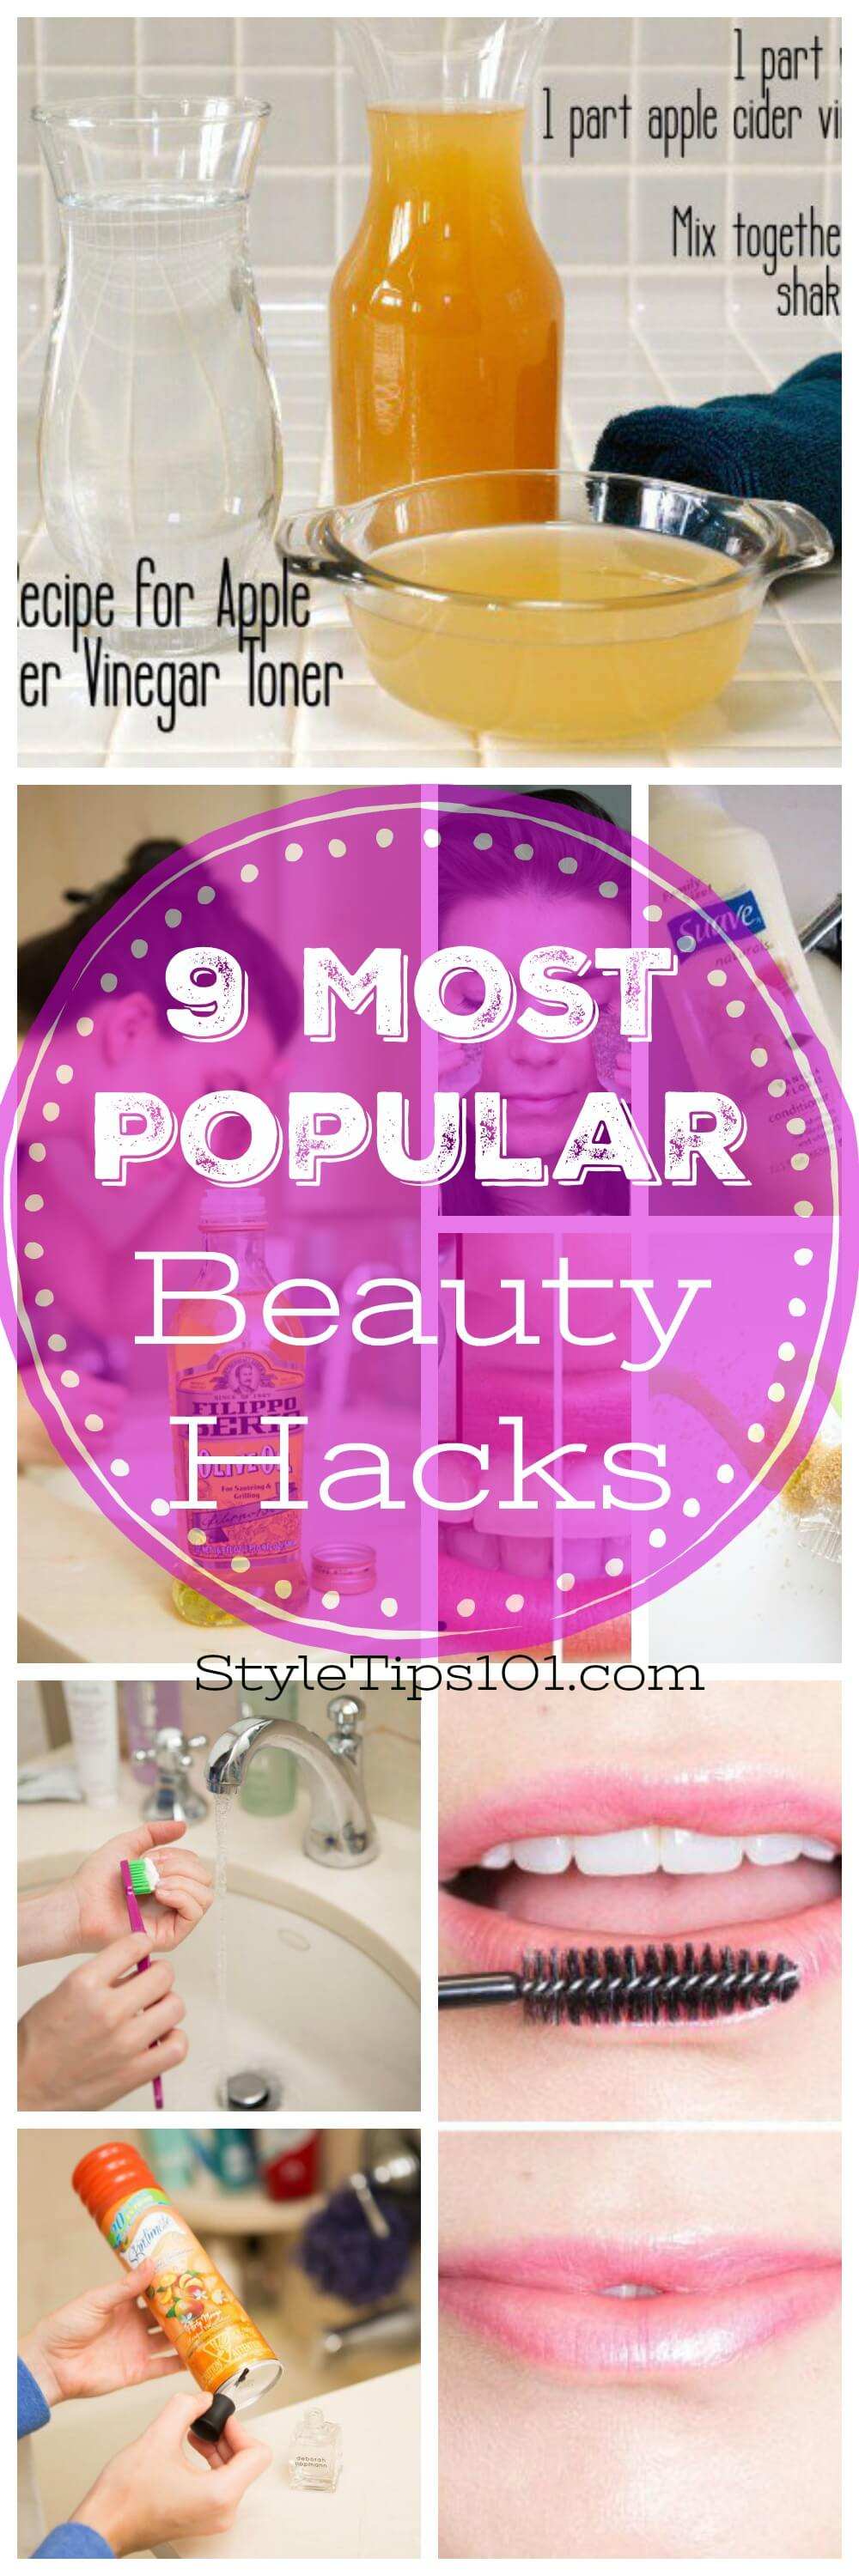 These DIY beauty hacks actually WORK as they've been tested by us as well as hundreds of other beauty bloggers and regular peeps alike!